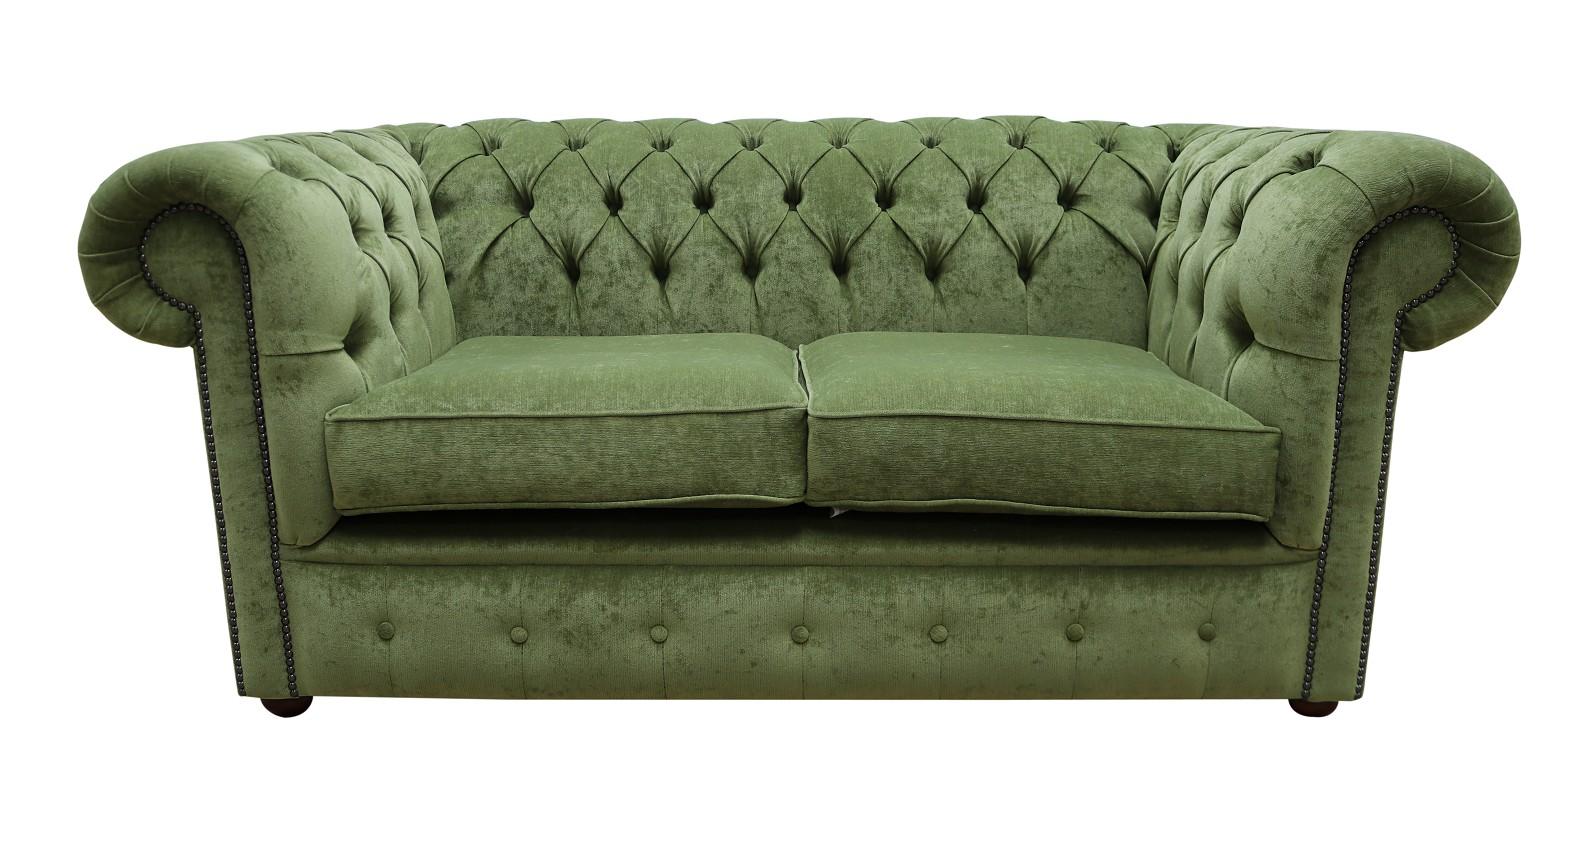 Astonishing Chesterfield 2 Seater Settee Sage Green Fabric Sofa Offer Home Interior And Landscaping Eliaenasavecom